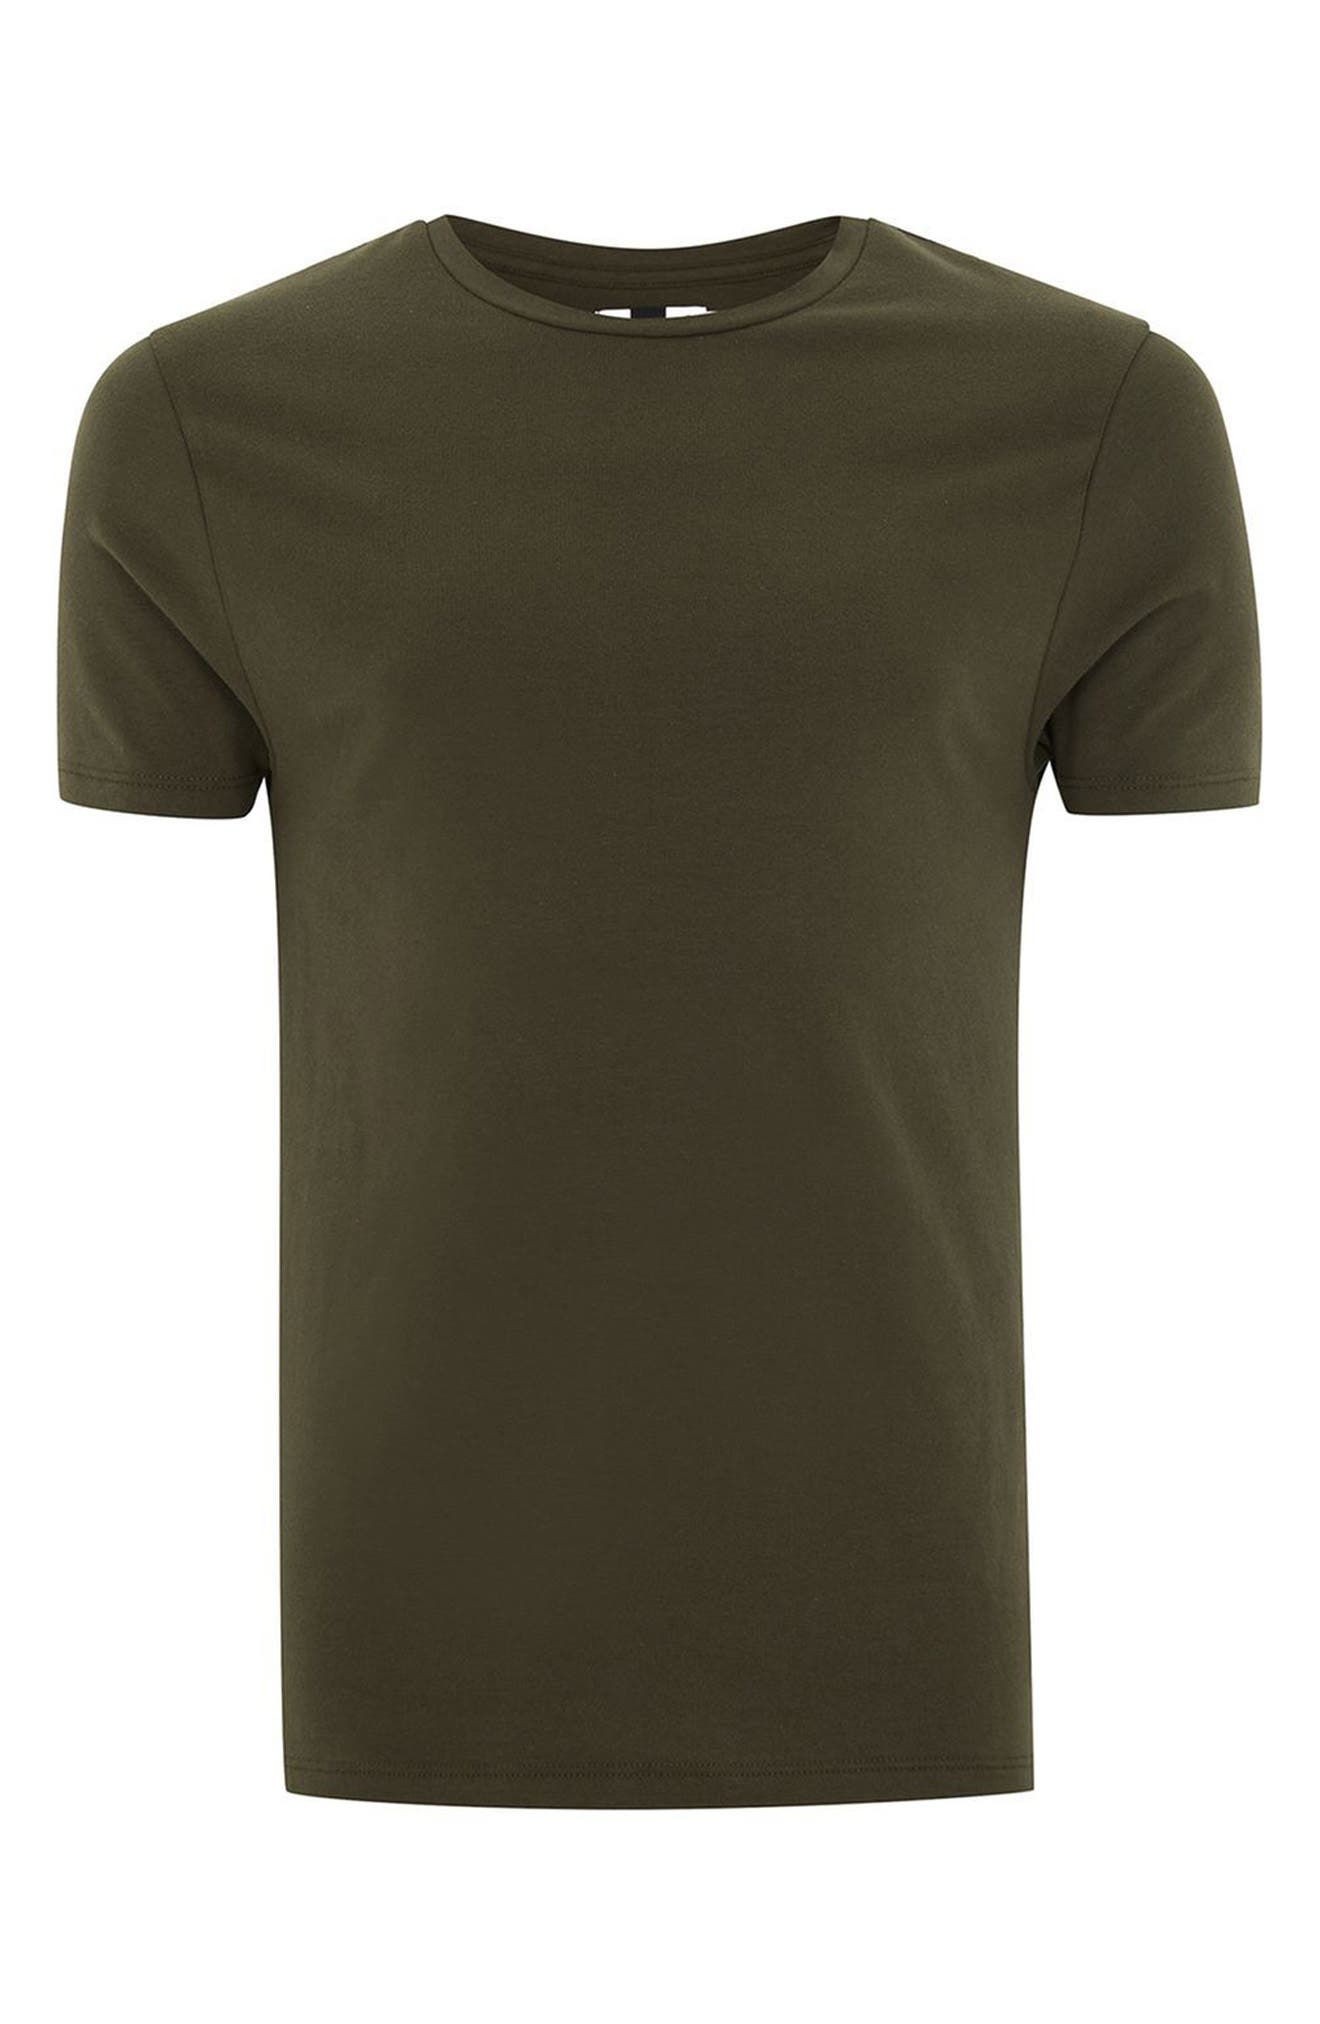 Ultra Muscle Fit T-Shirt,                             Alternate thumbnail 4, color,                             Olive